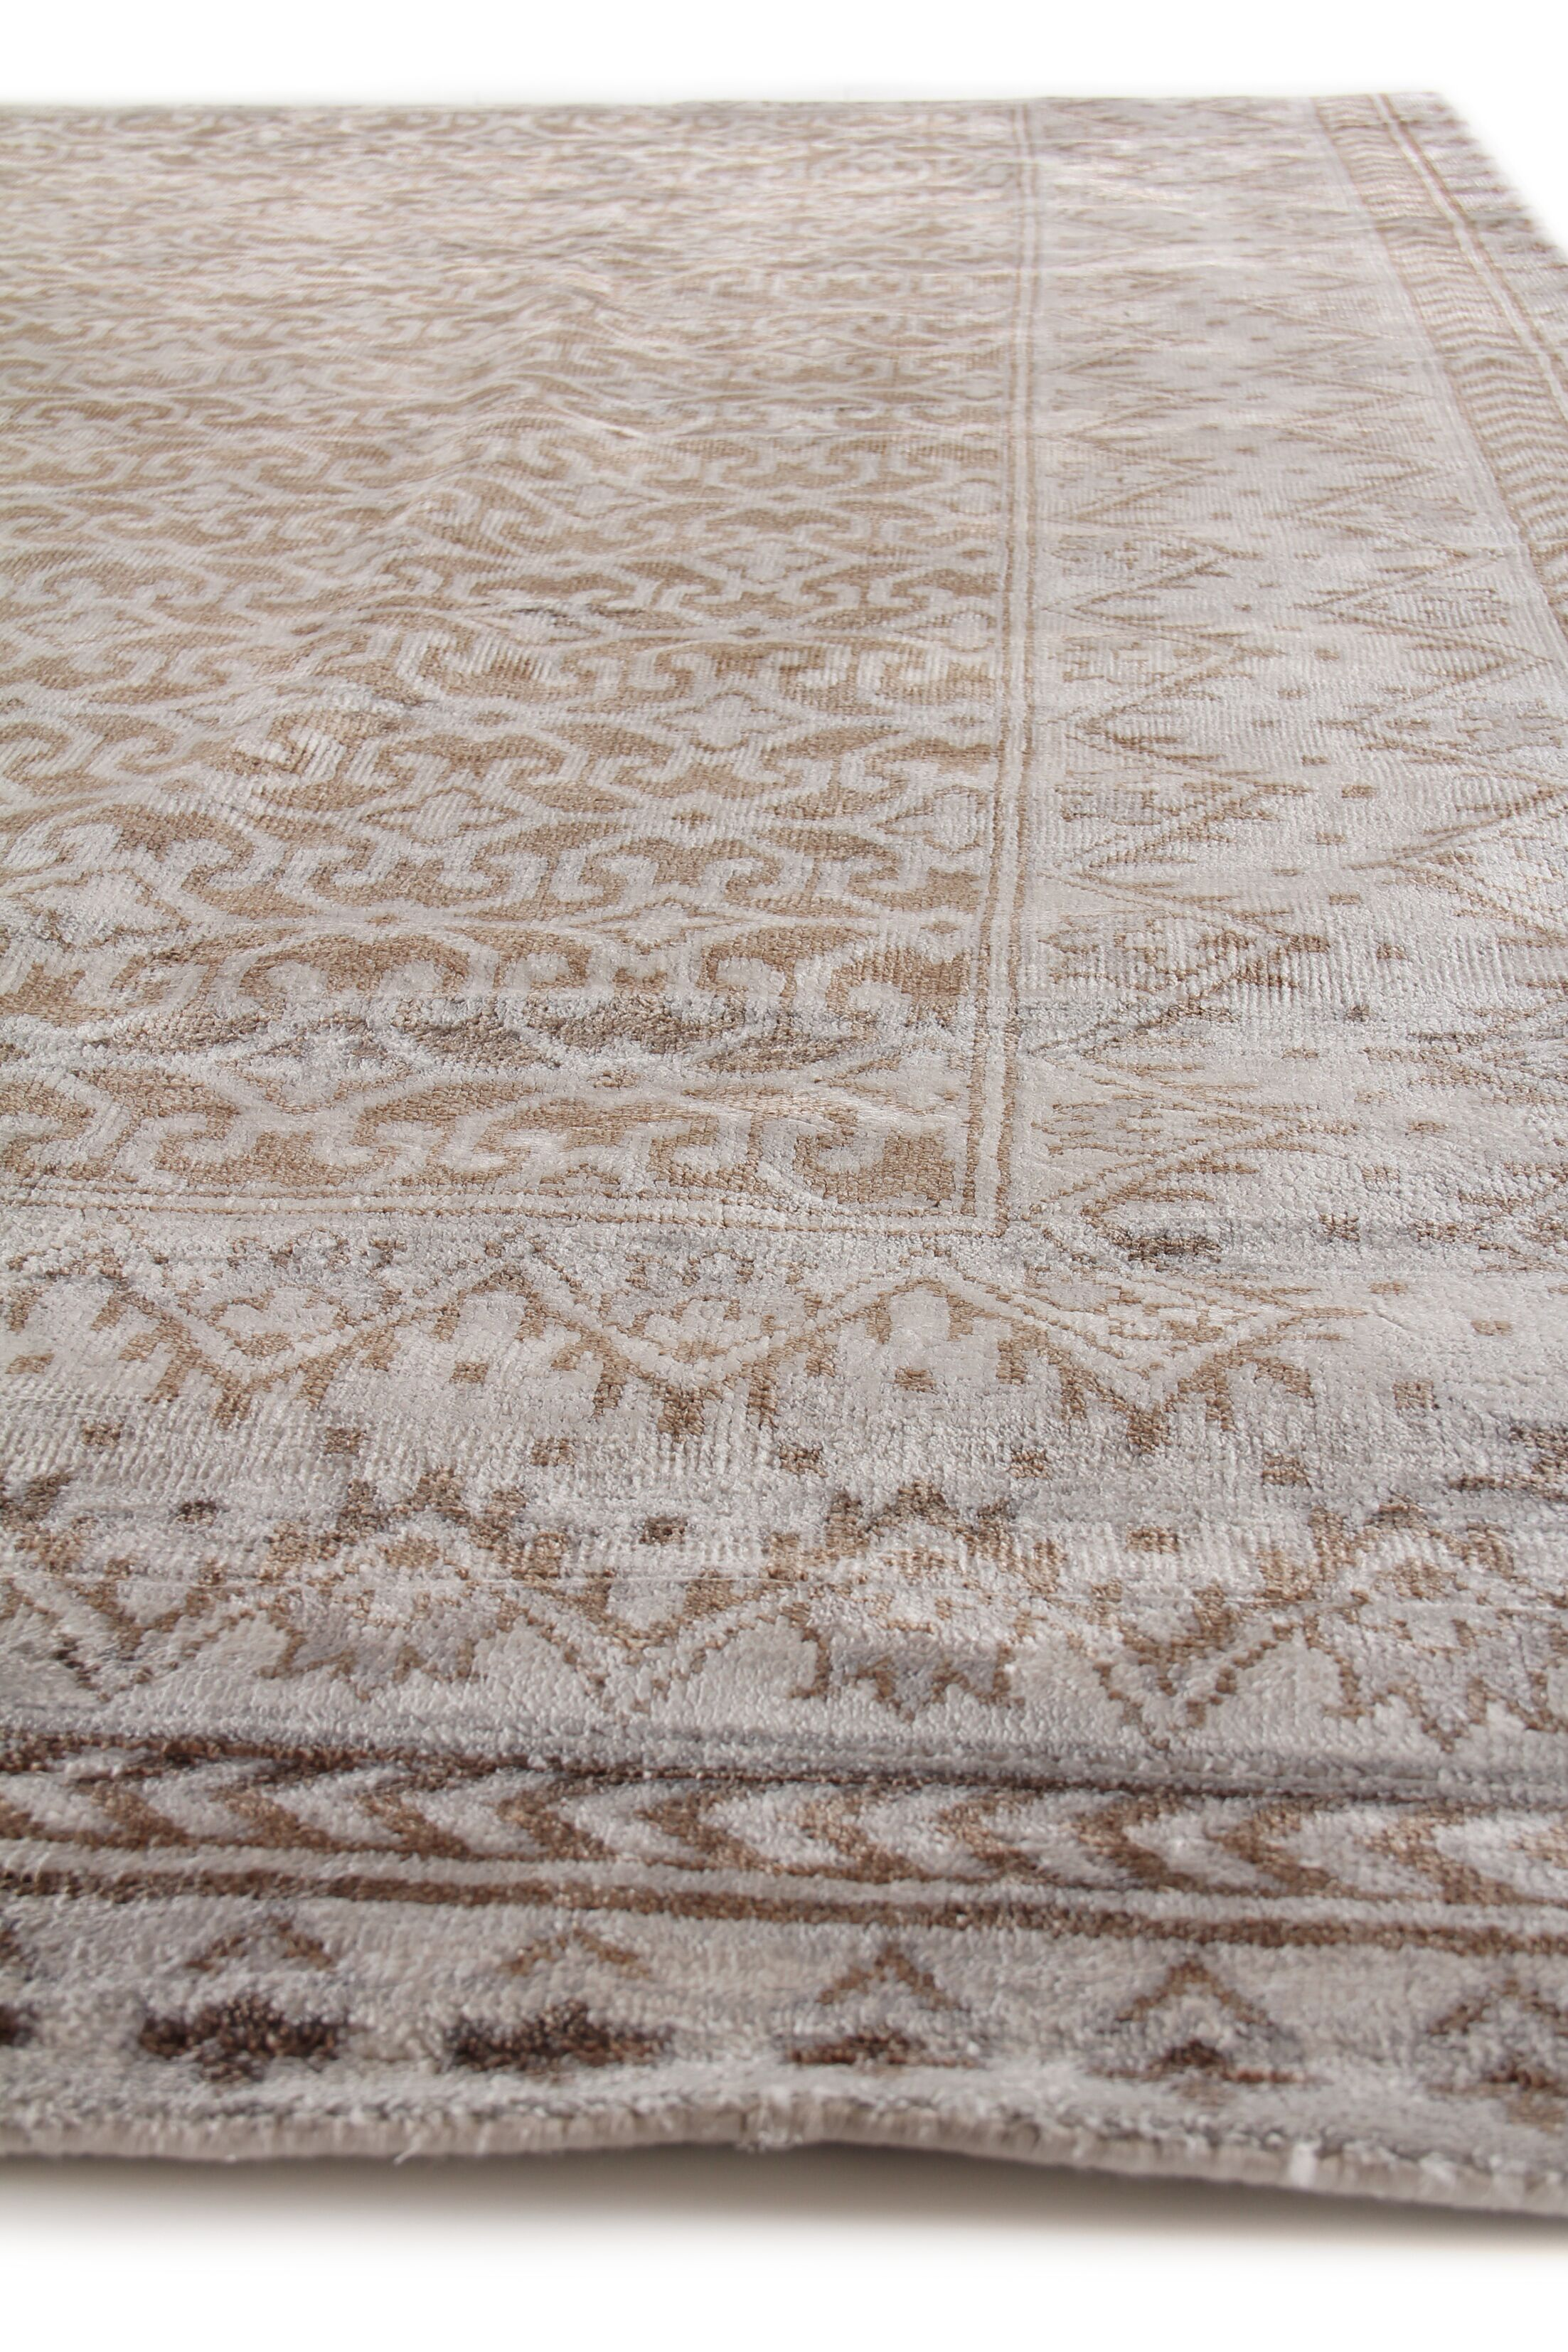 Antique Weave Hand-Knotted Silk Brown/Silver Area Rug Rug Size: Rectangle 9' x 12'